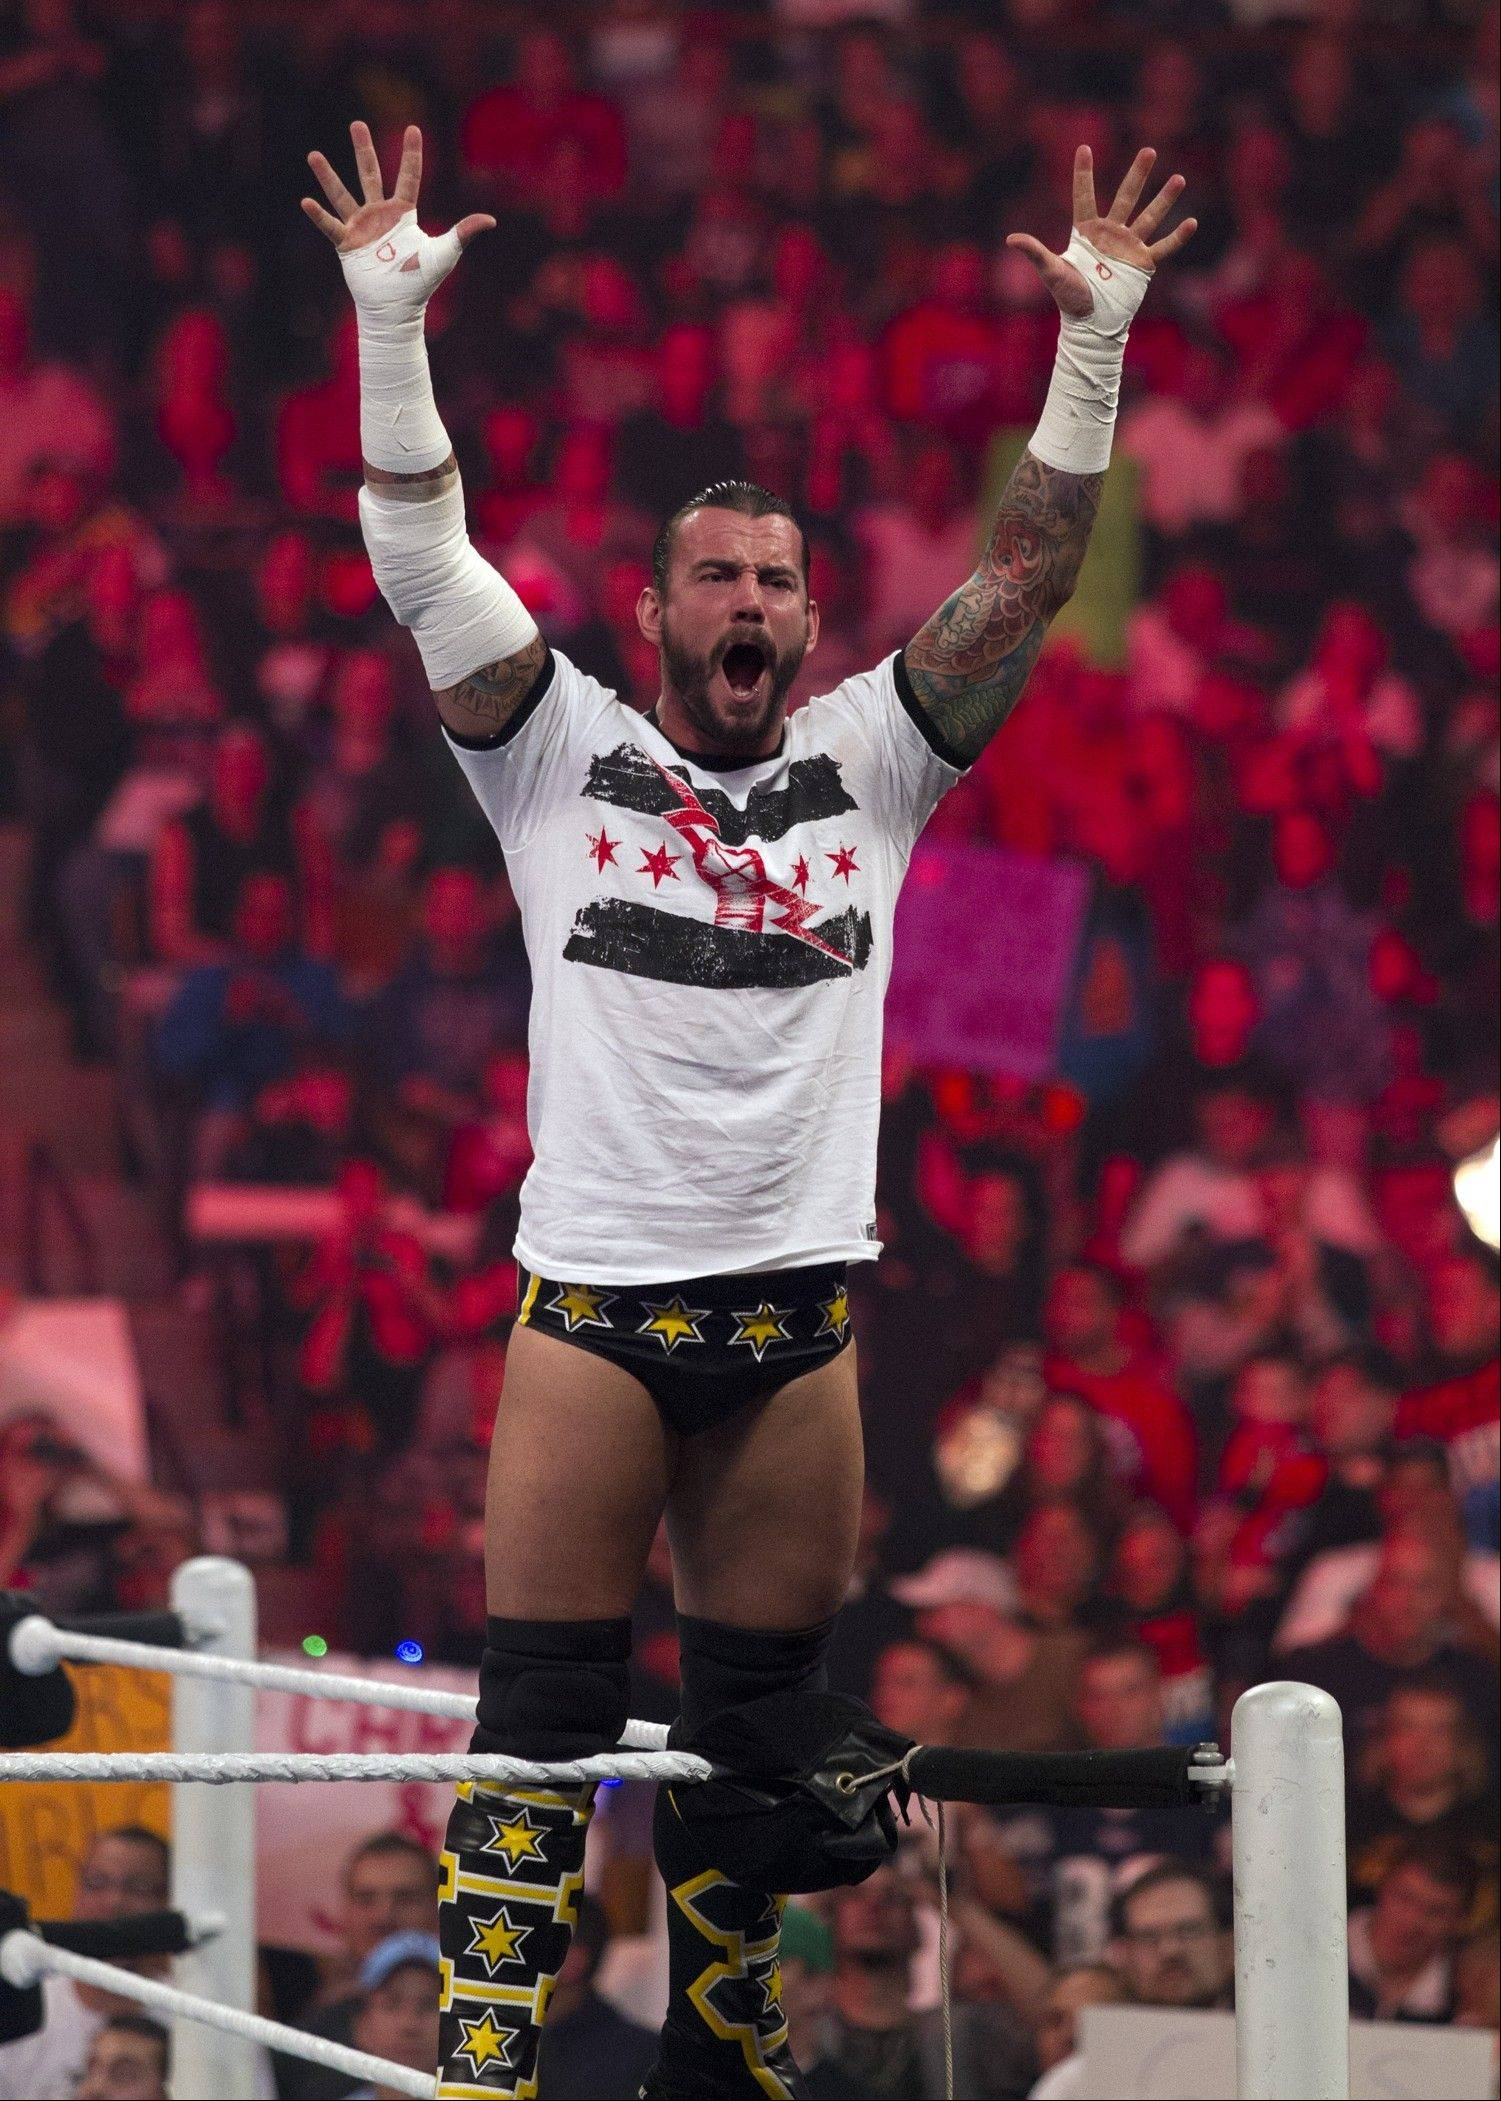 Chicago-native and WWE Champion CM Punk is set to compete at the Allstate Arena in Rosemont.